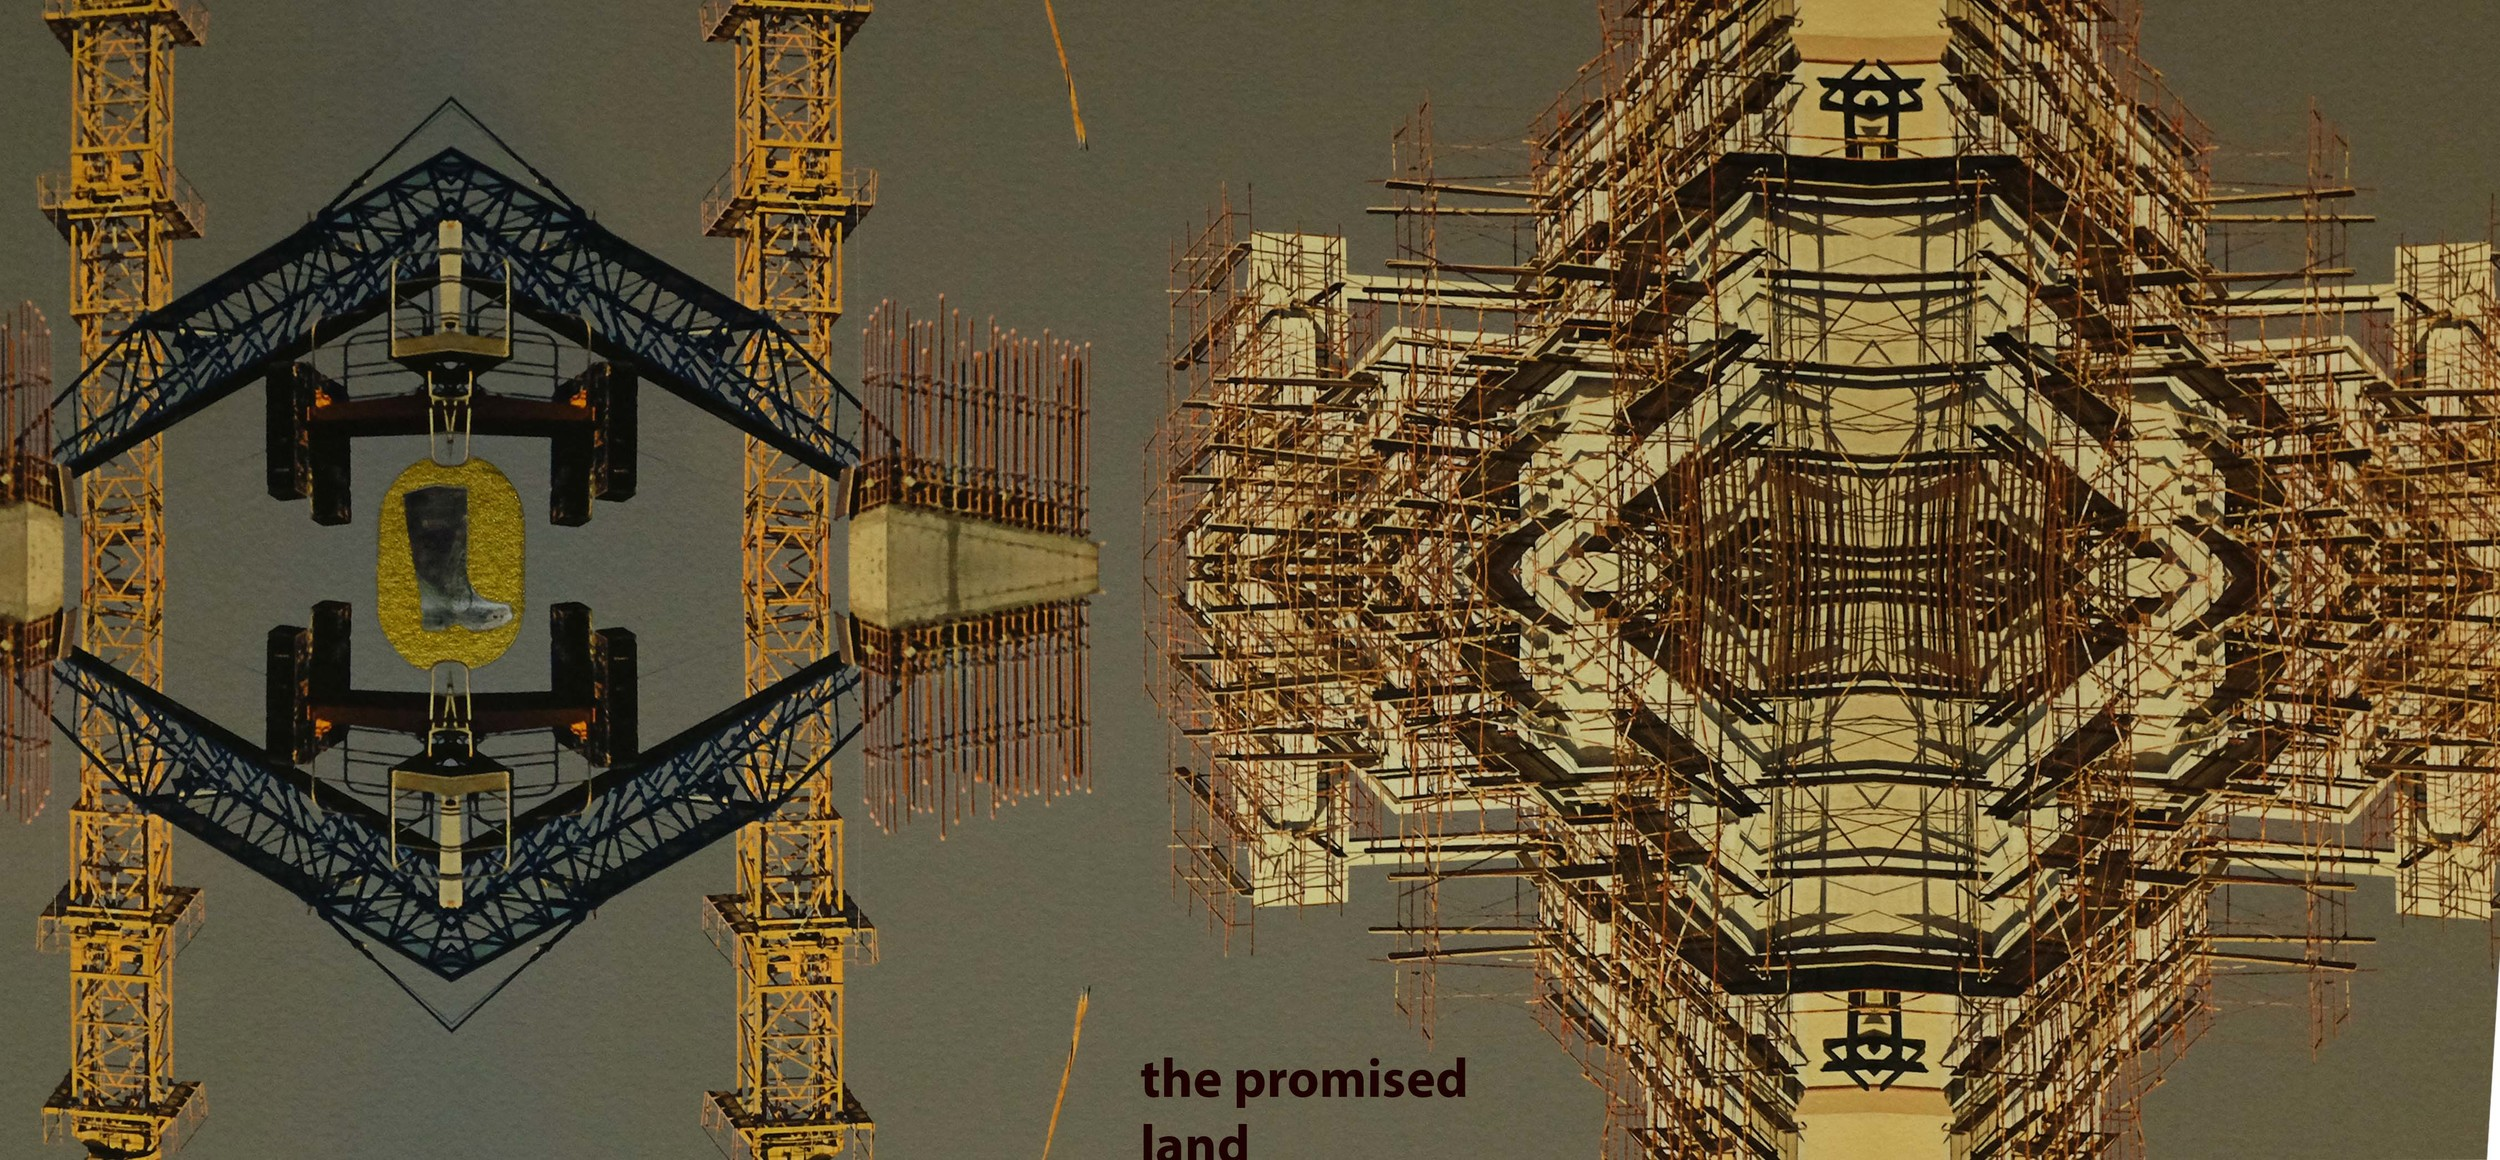 THE PROMISED LAND   Zahra Jewanjee's work inhabits a place presently being constructed with an armature of hope and uncertainty. Masking this construction in progress, wallpaper is employed to reflect on the fabric of the structure itself. The Promised Land drafts a geometric plane that defies order and describes an intangible idea with a commonplace vocabulary.  Curated by Usman Saeed  2014